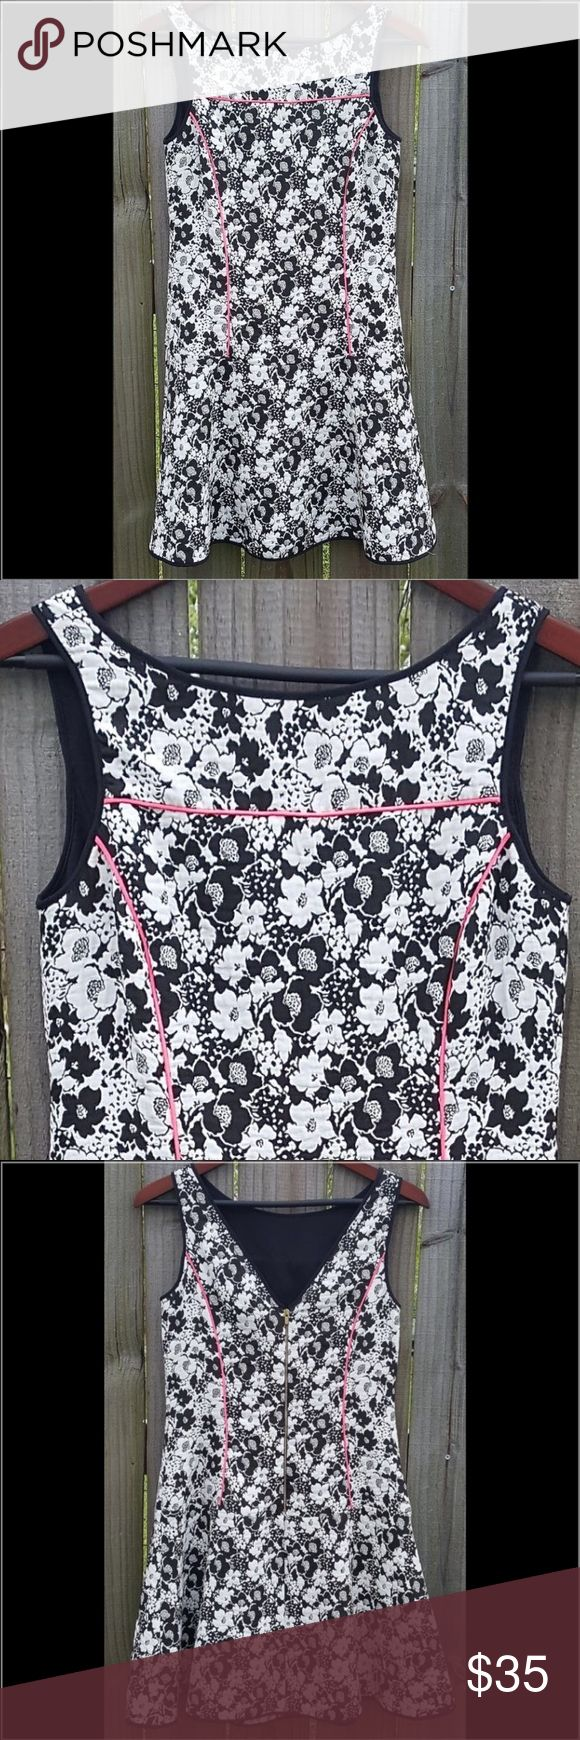 Banana Republic Floral Print Dress Sleeveless fit and flare dress with black and white floral print with neon pink piping detail. Back zipper. Material: 51% Rayon; 49% Poly Banana Republic Dresses